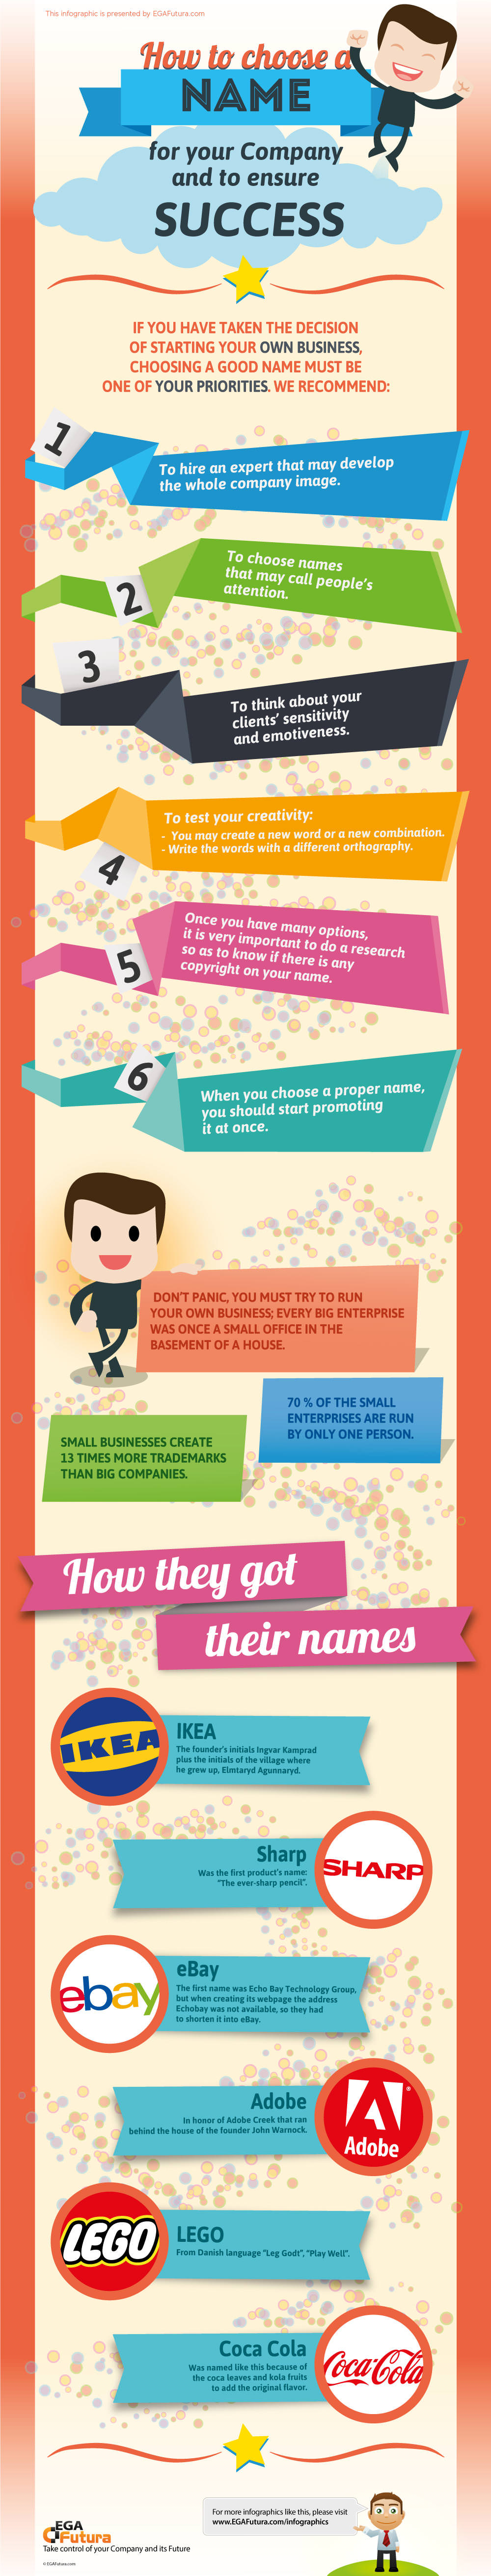 Infographic: How to choose a Name for your Company and to ensure Success